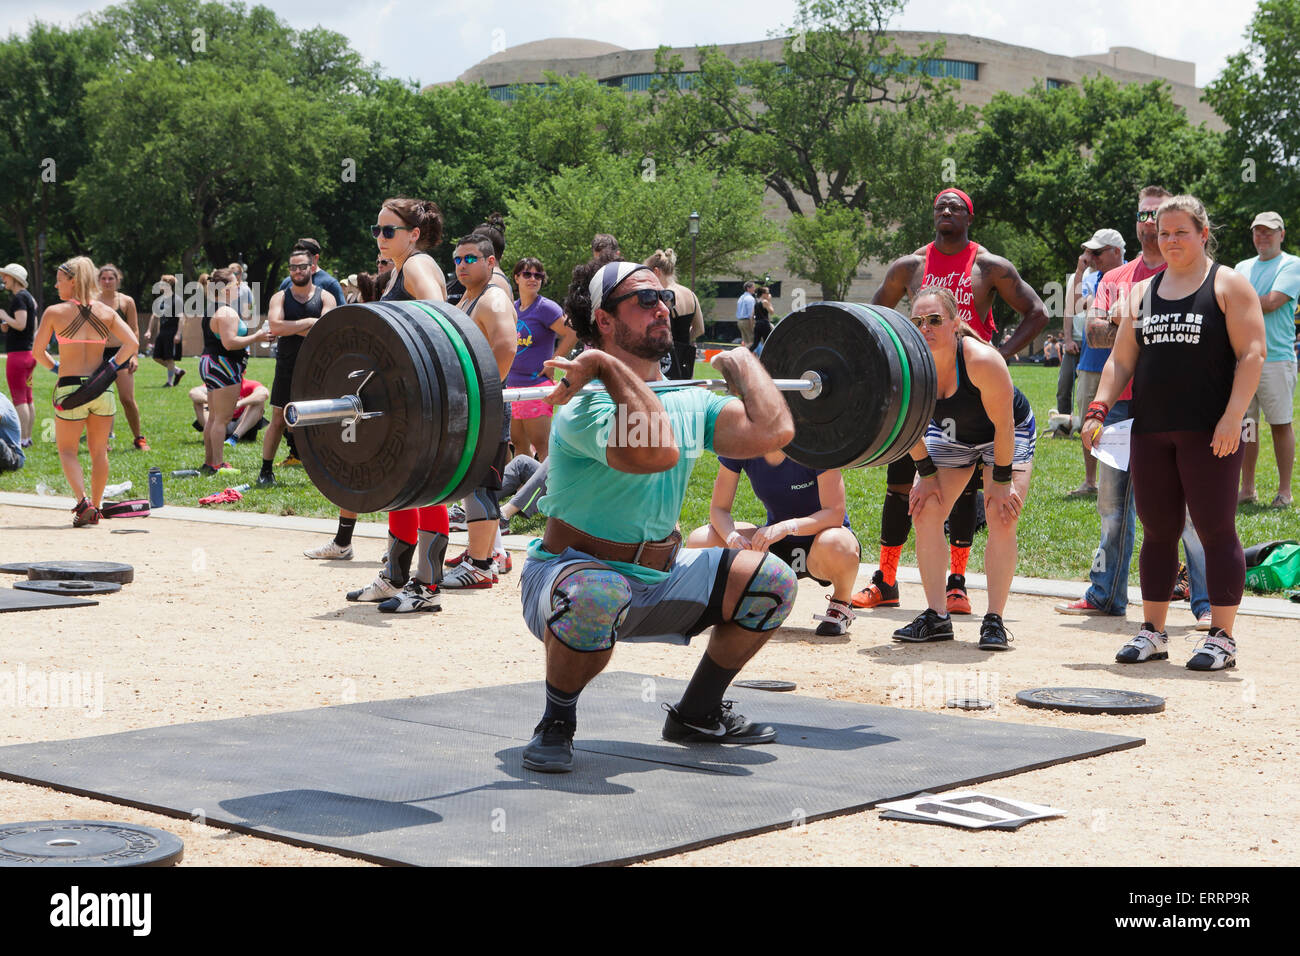 Man performing weightlifting at an outdoor fitness program - USA - Stock Image